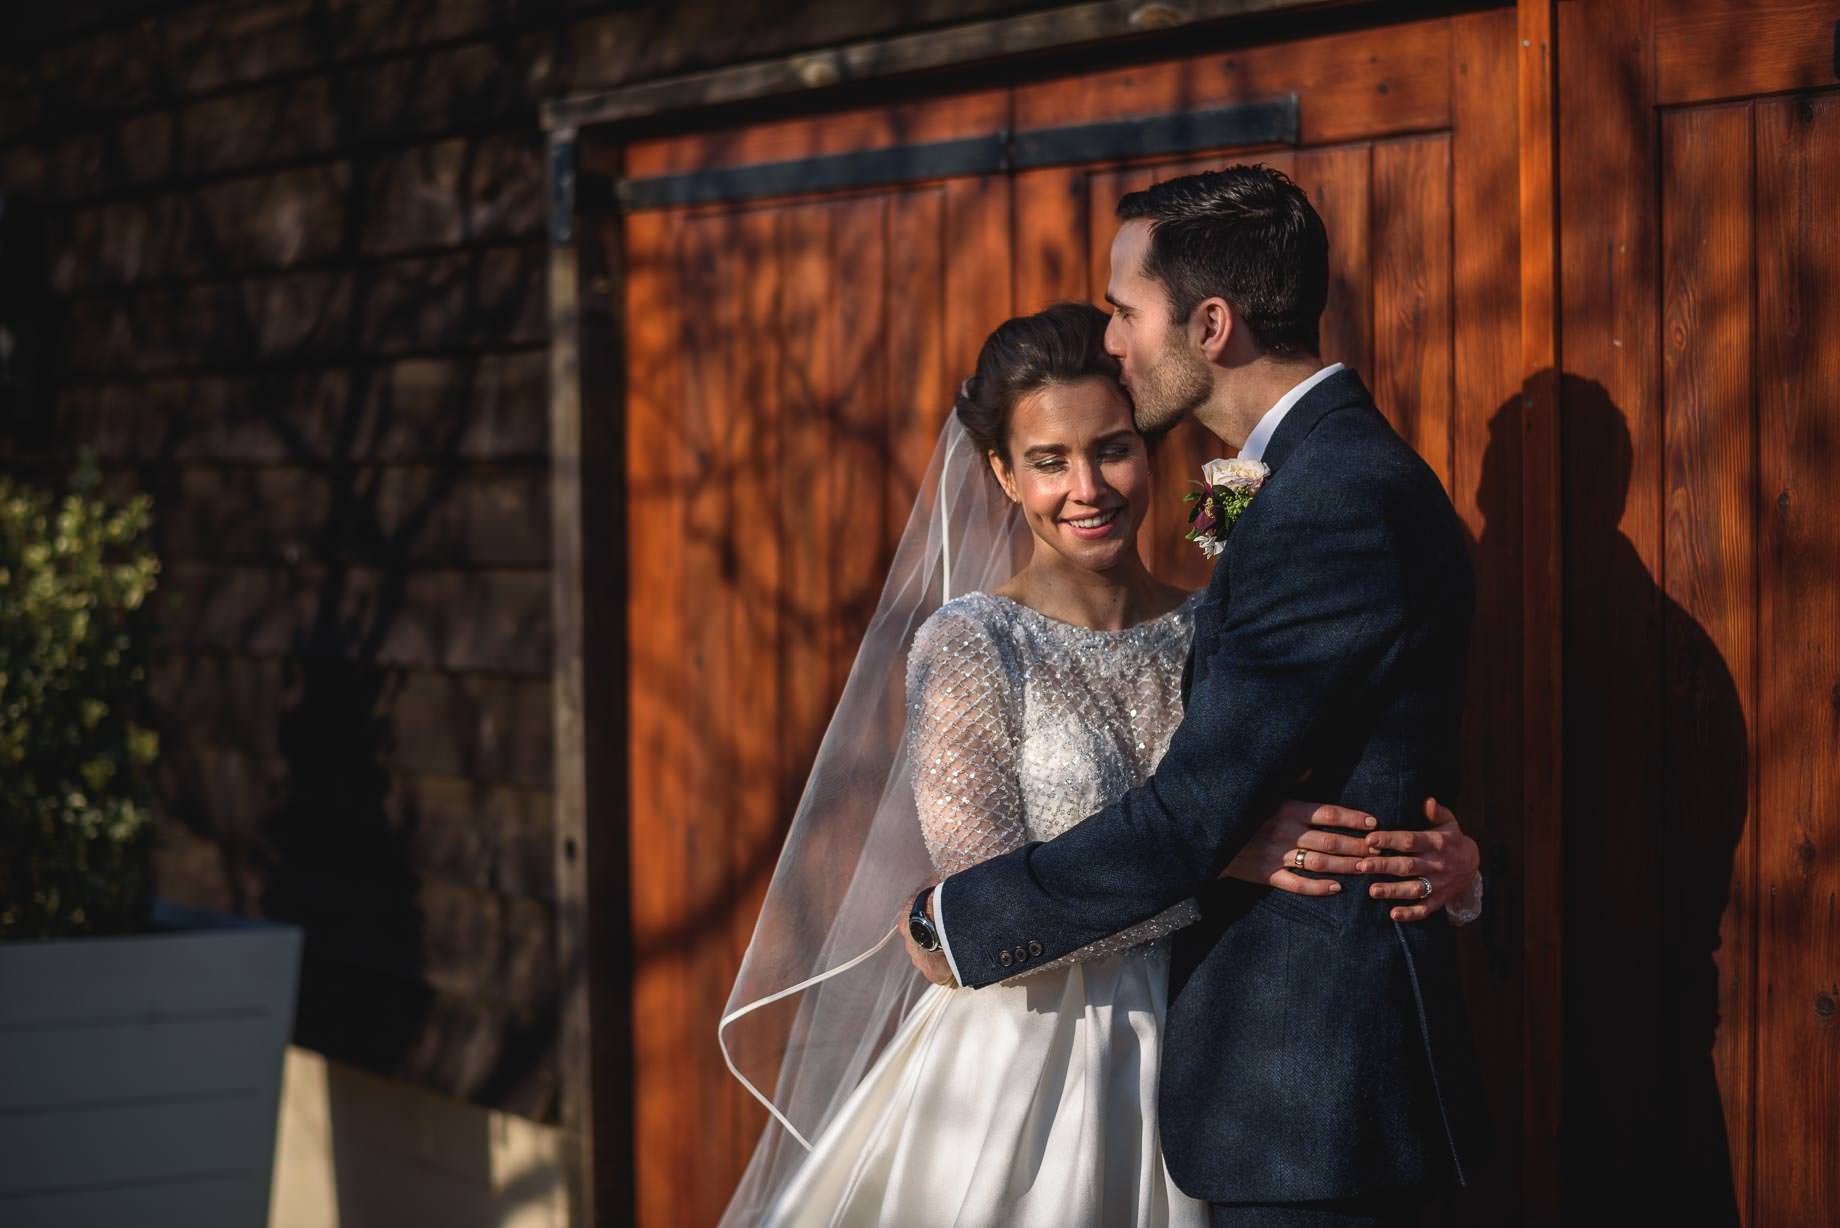 Gate Street Barn wedding photography - Aubrey + Joe